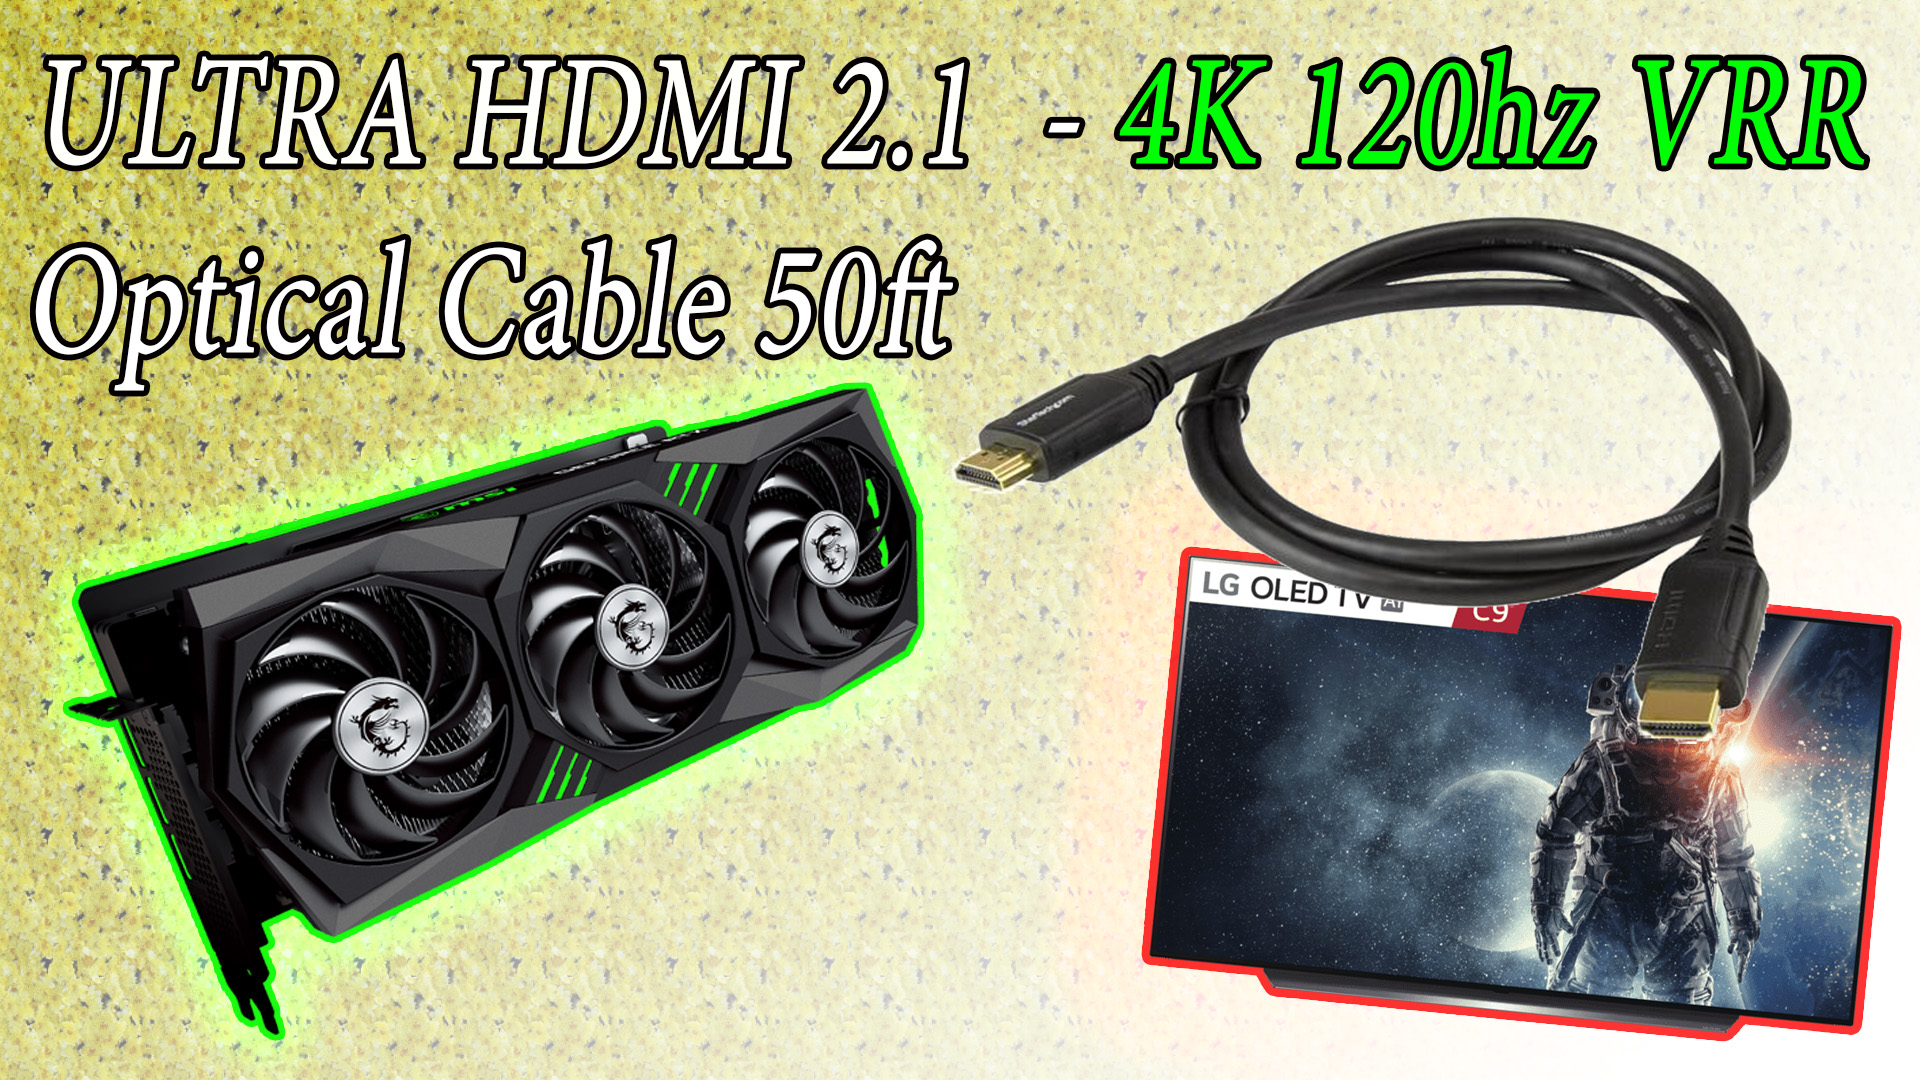 Ultra HDMI 2.1 Optical cable that works with an NVIDIA RTX 3080 and 3090 and LG OLED B9 and C9 at 120hz 4K 4:4:4 VRR